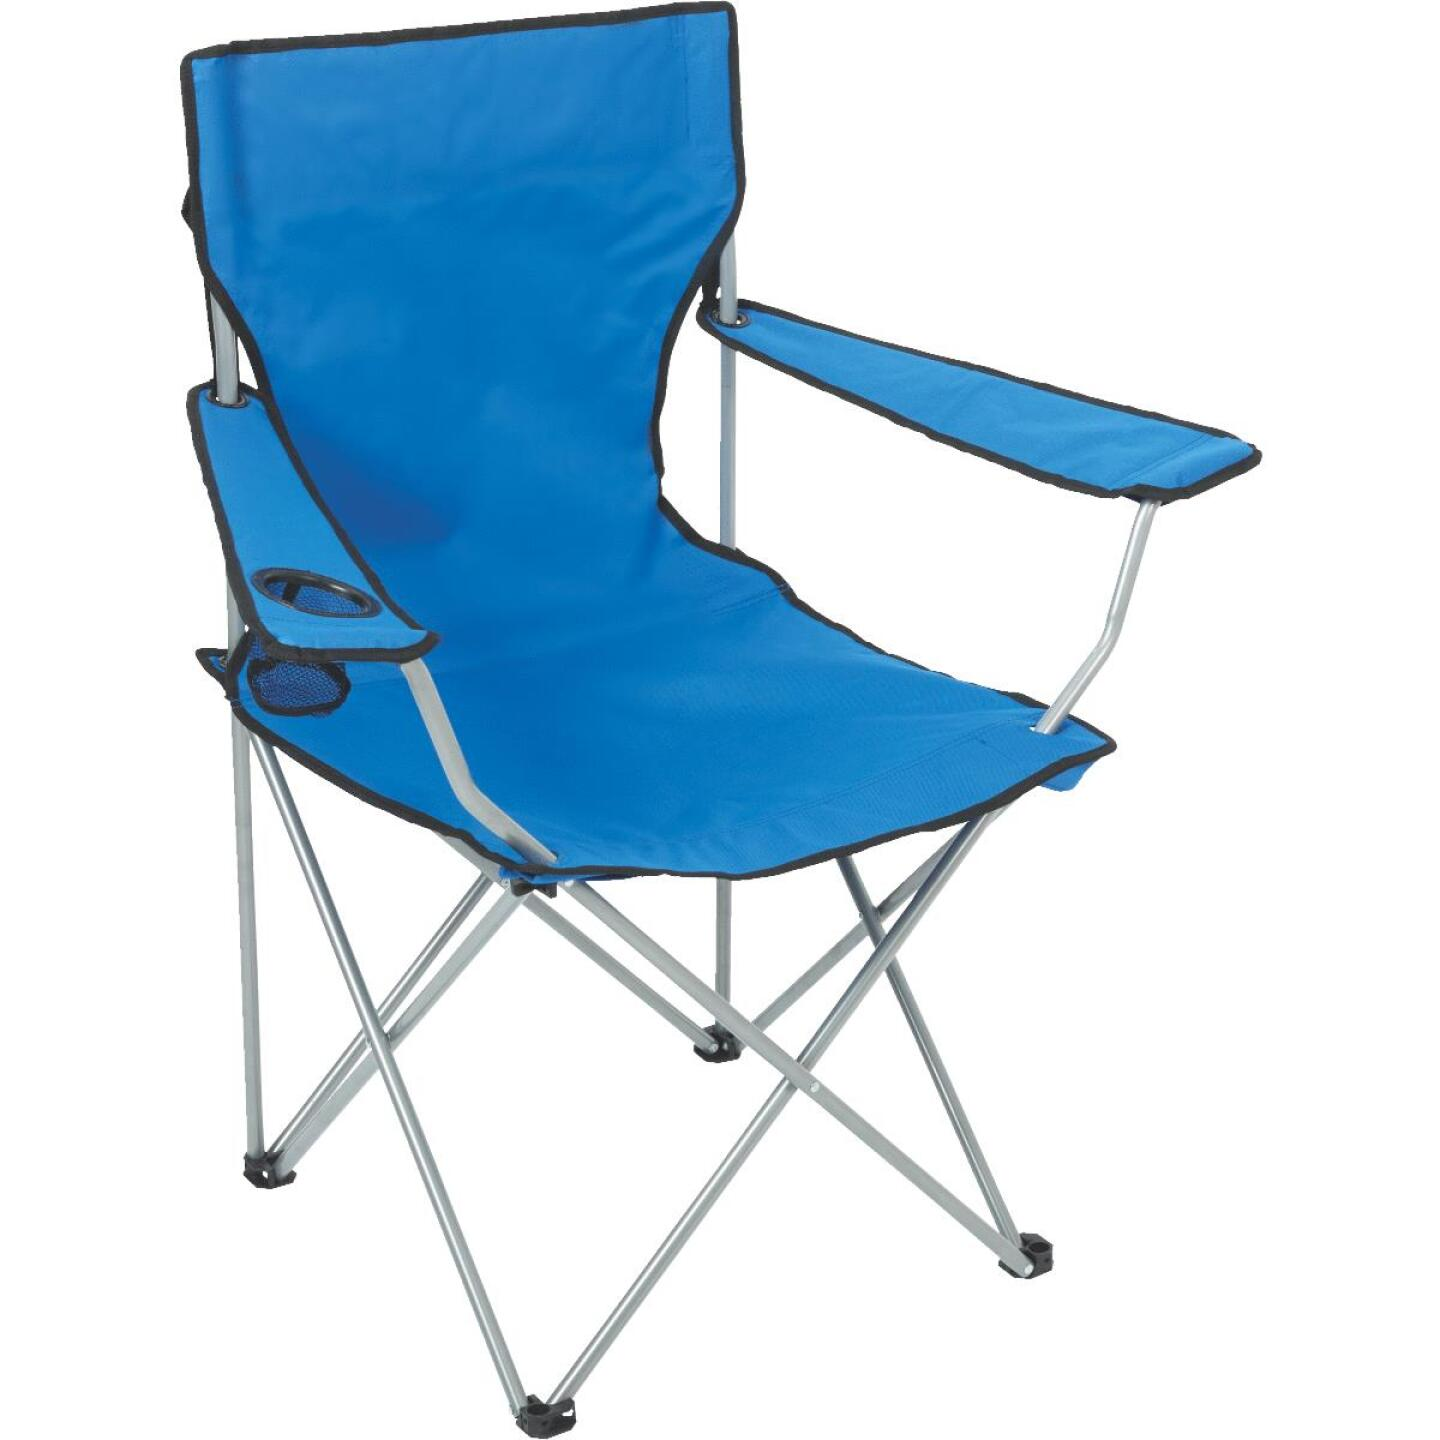 Outdoor Expressions Blue Polyester Folding Chair Image 1